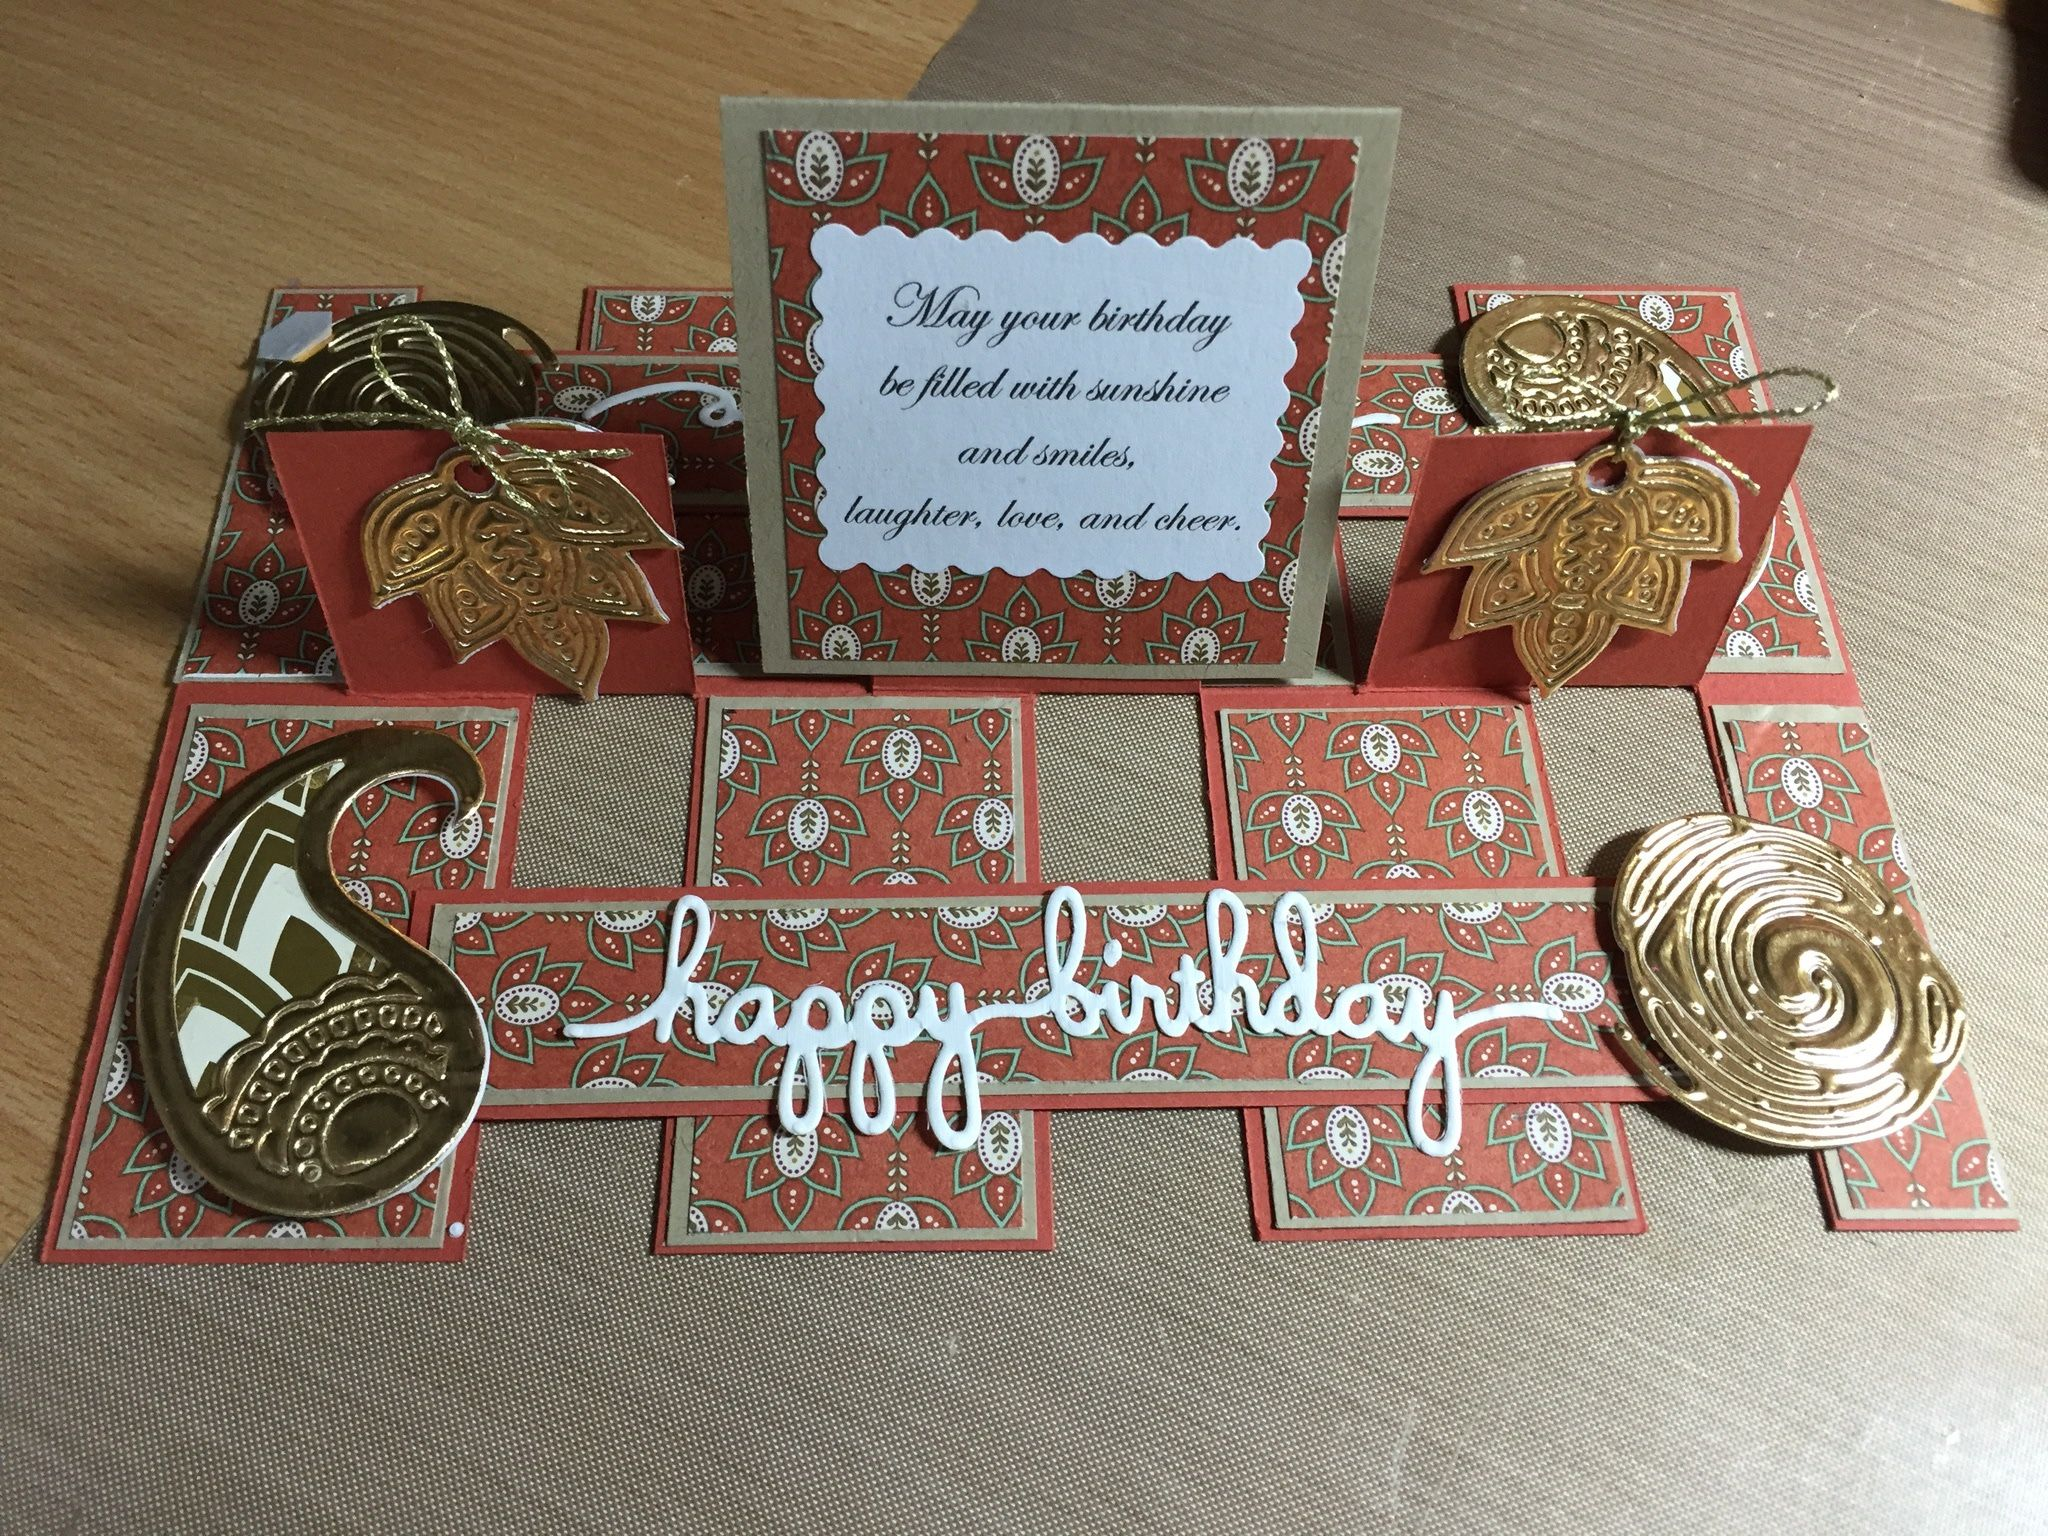 Triple Impossible Card Anniversary Cards Handmade Pop Up Cards Card Craft